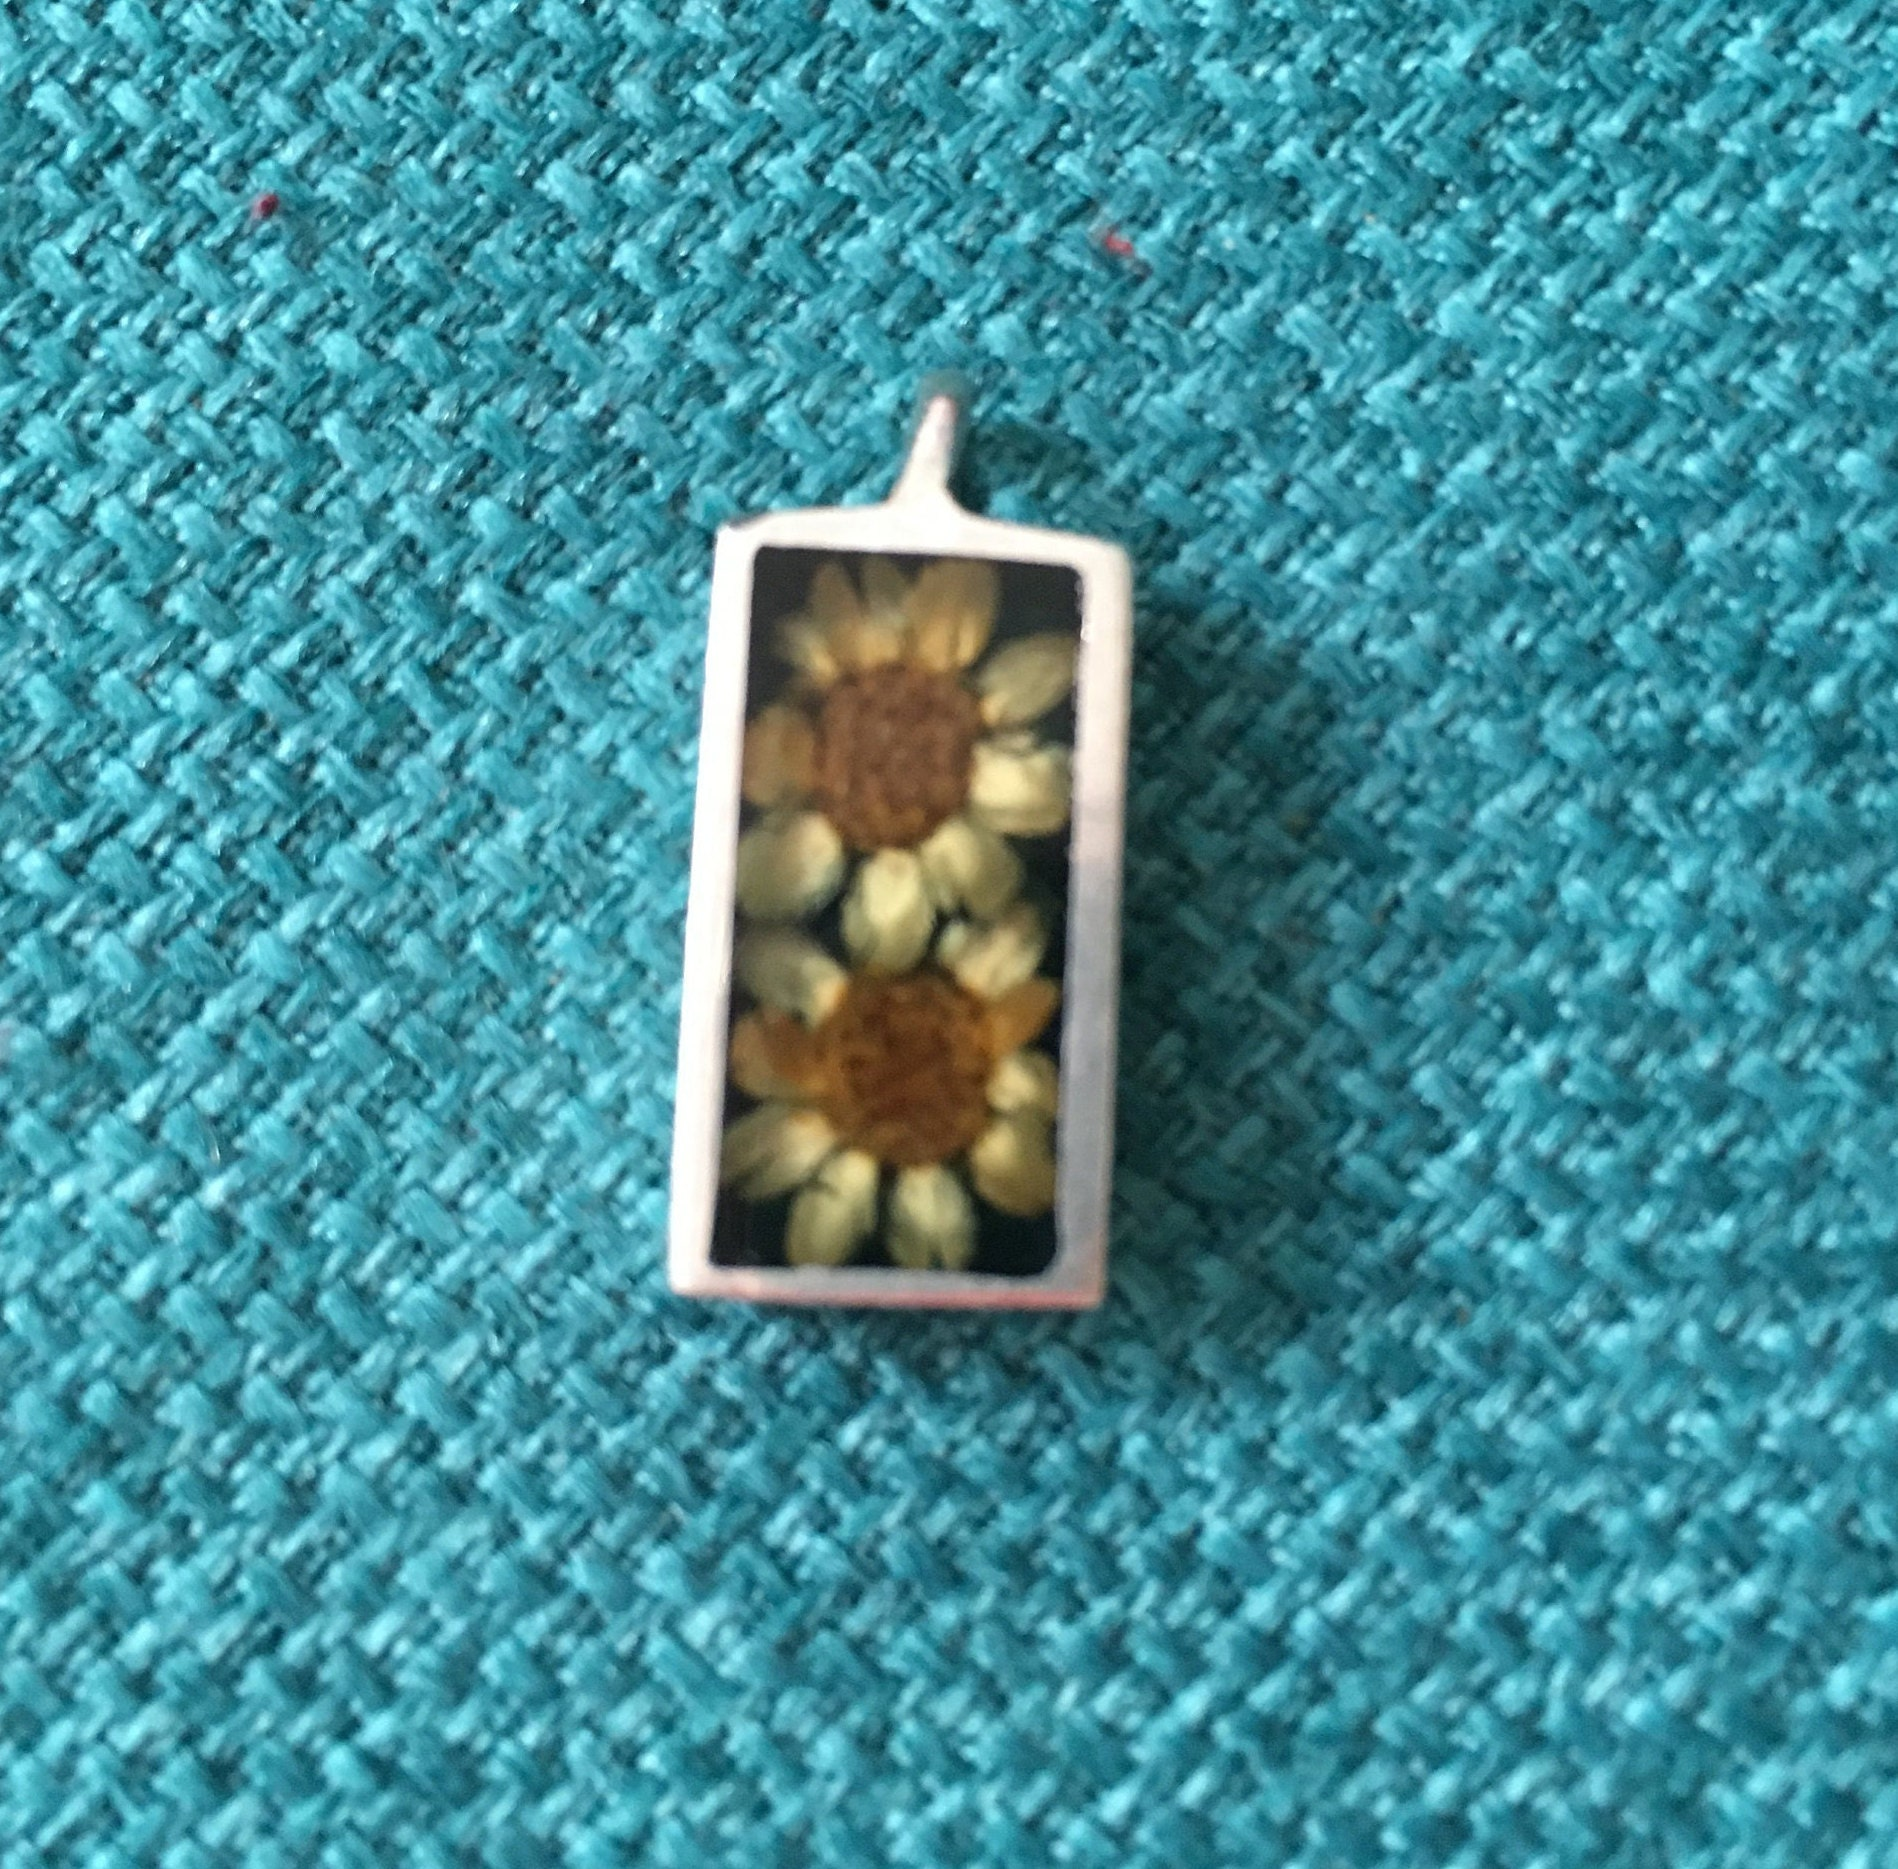 Sterling Silver Pendant with Dried Flowers / 925 / Hallmarked